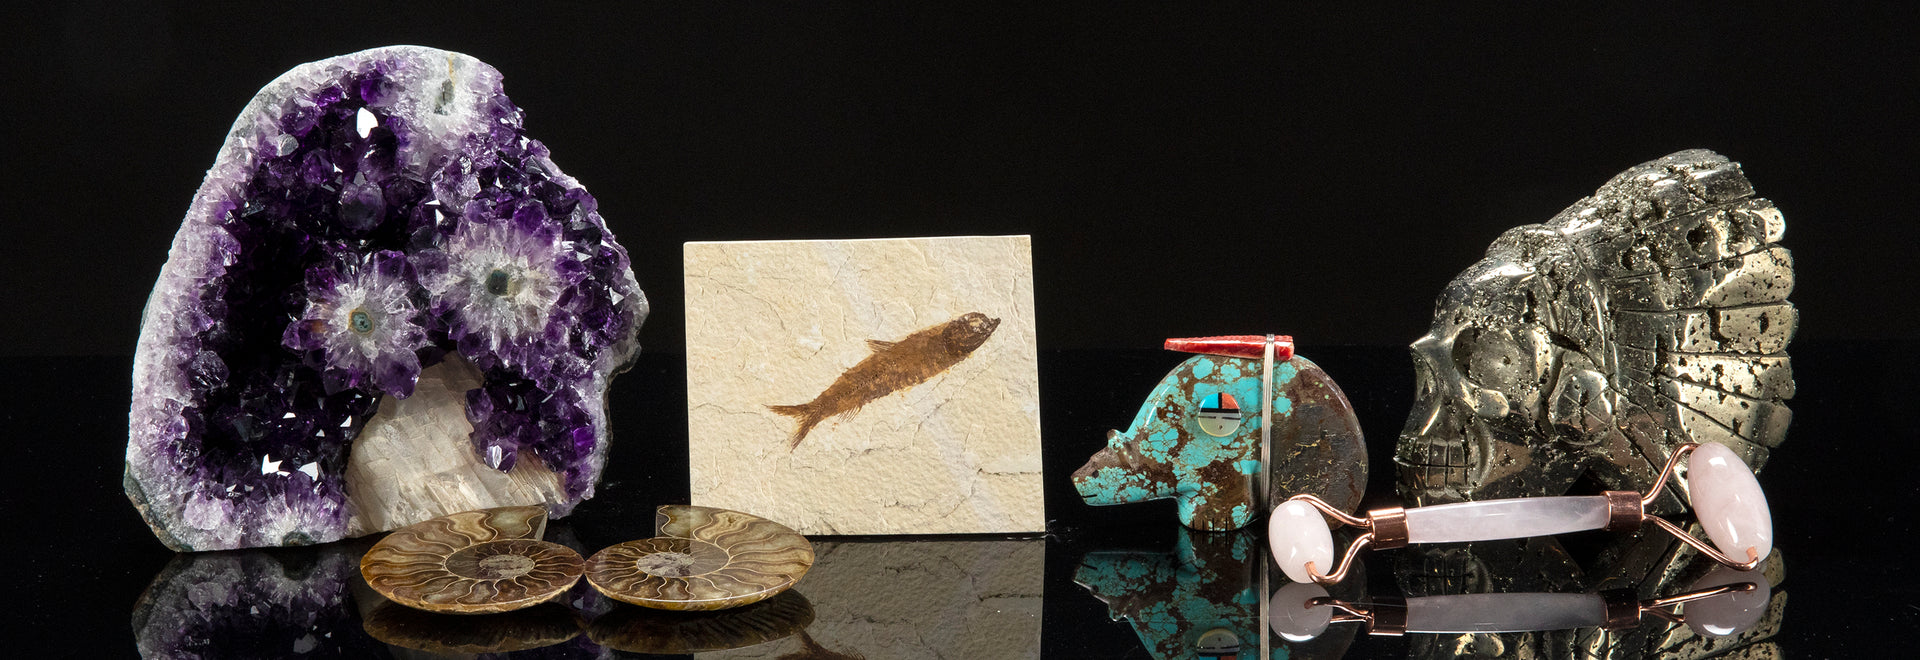 Gemstones and Fossils Image